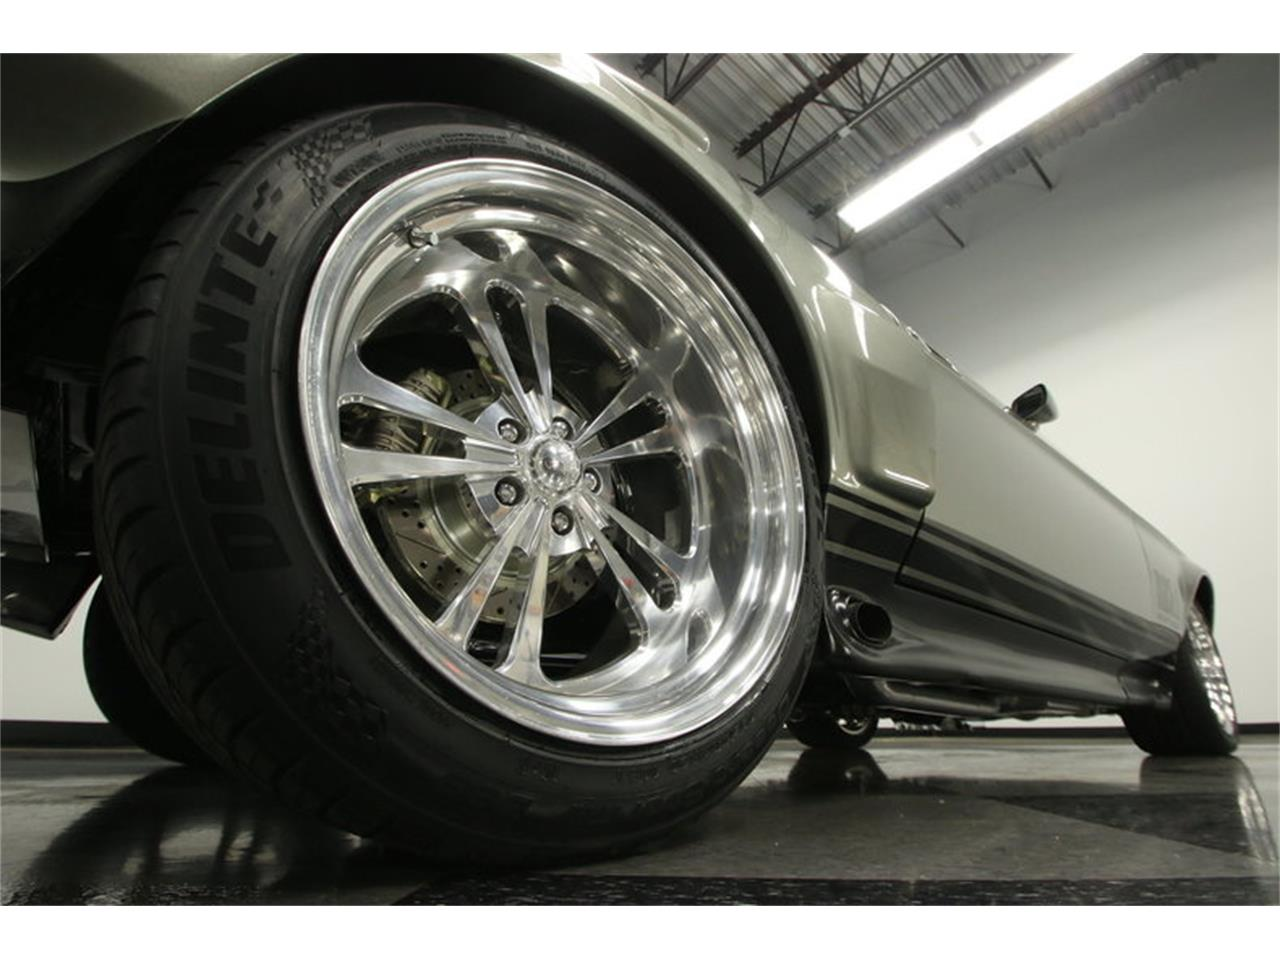 Large Picture of '71 Mustang Fastback Restomod - $99,995.00 - MGHW